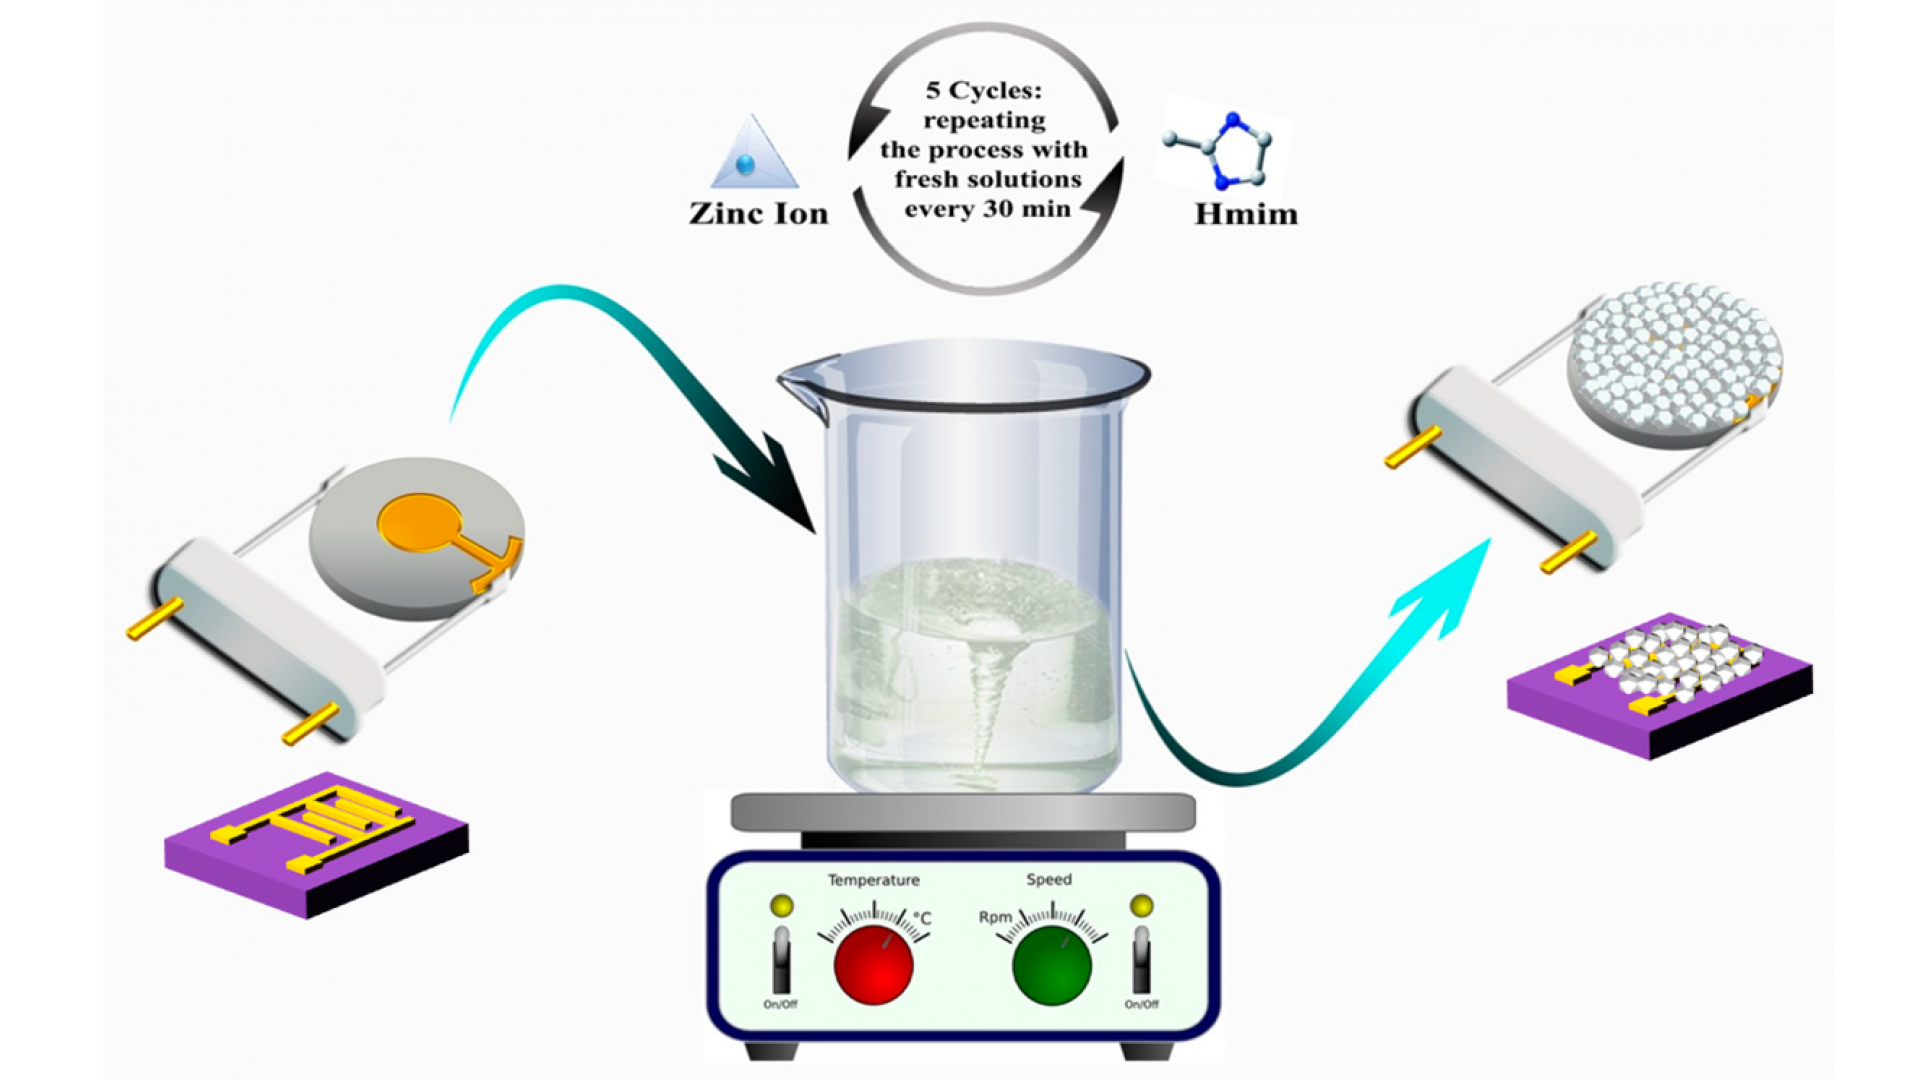 A Comparative Study of Interdigitated Electrode and Quartz Crystal Microbalance Transduction Techniques for Metal–Organic Framework-Based Acetone Sensors